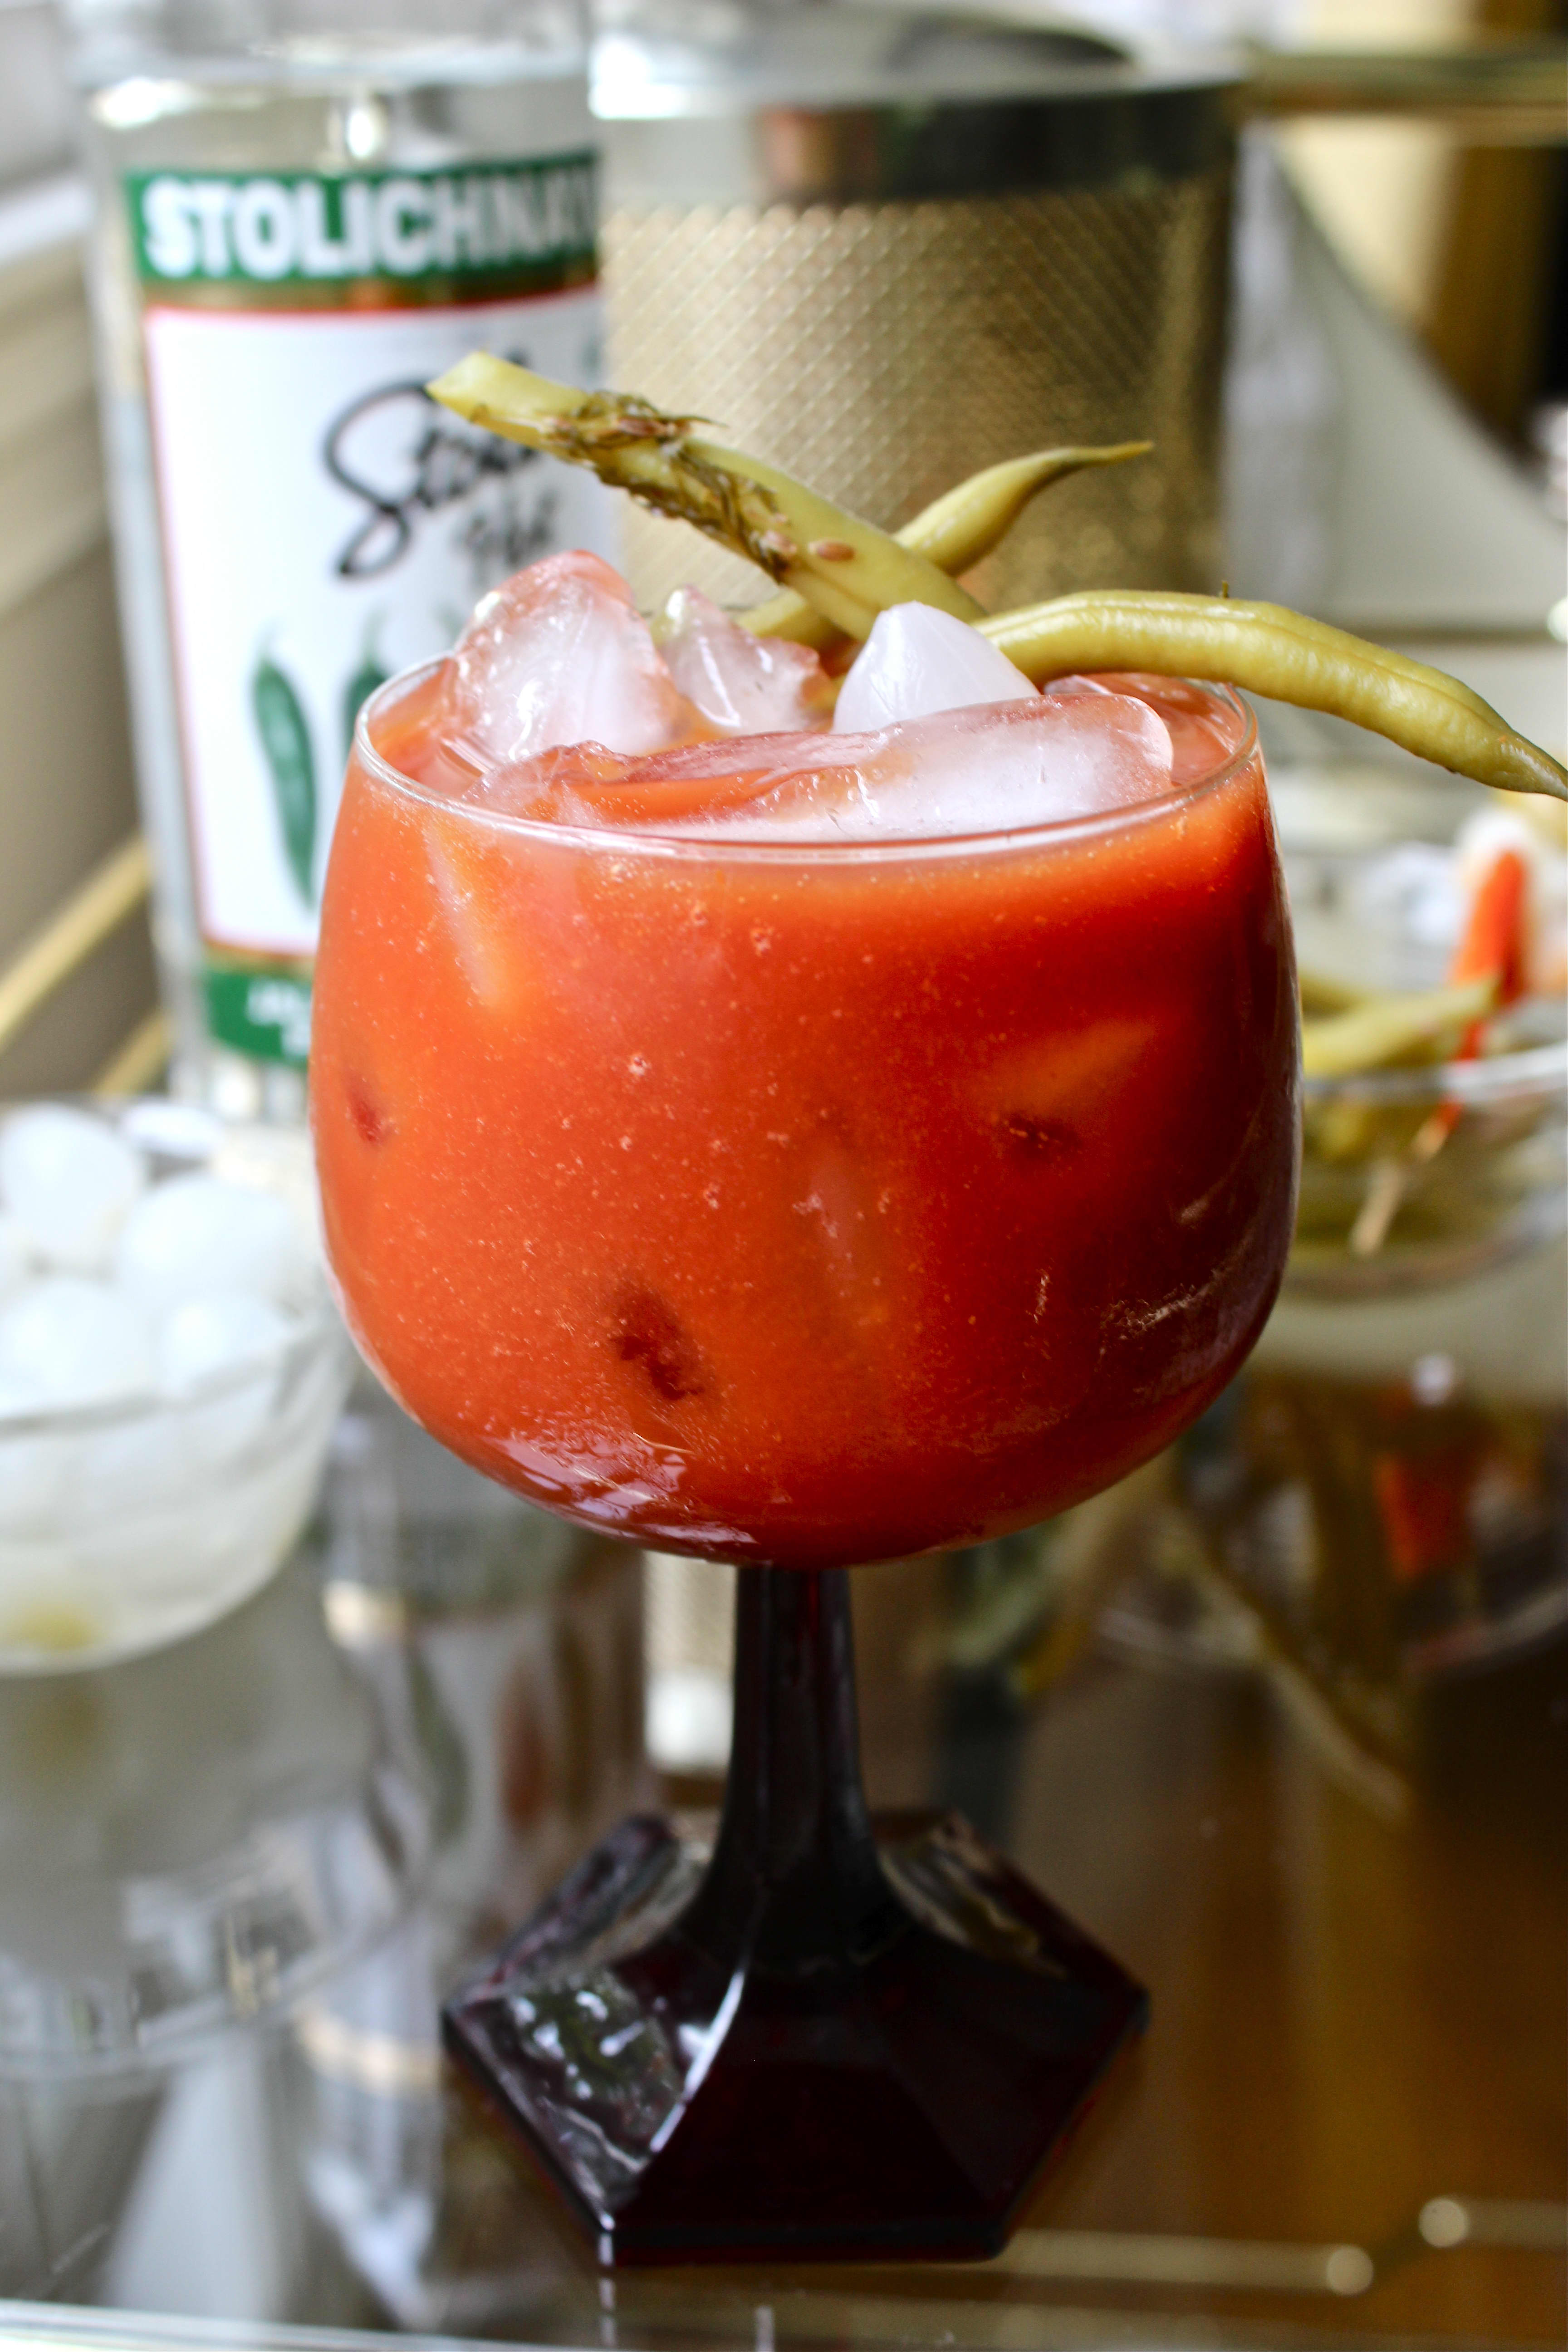 Recipe: Jalapeño Bloody Mary with Quick Pickled Vegetables